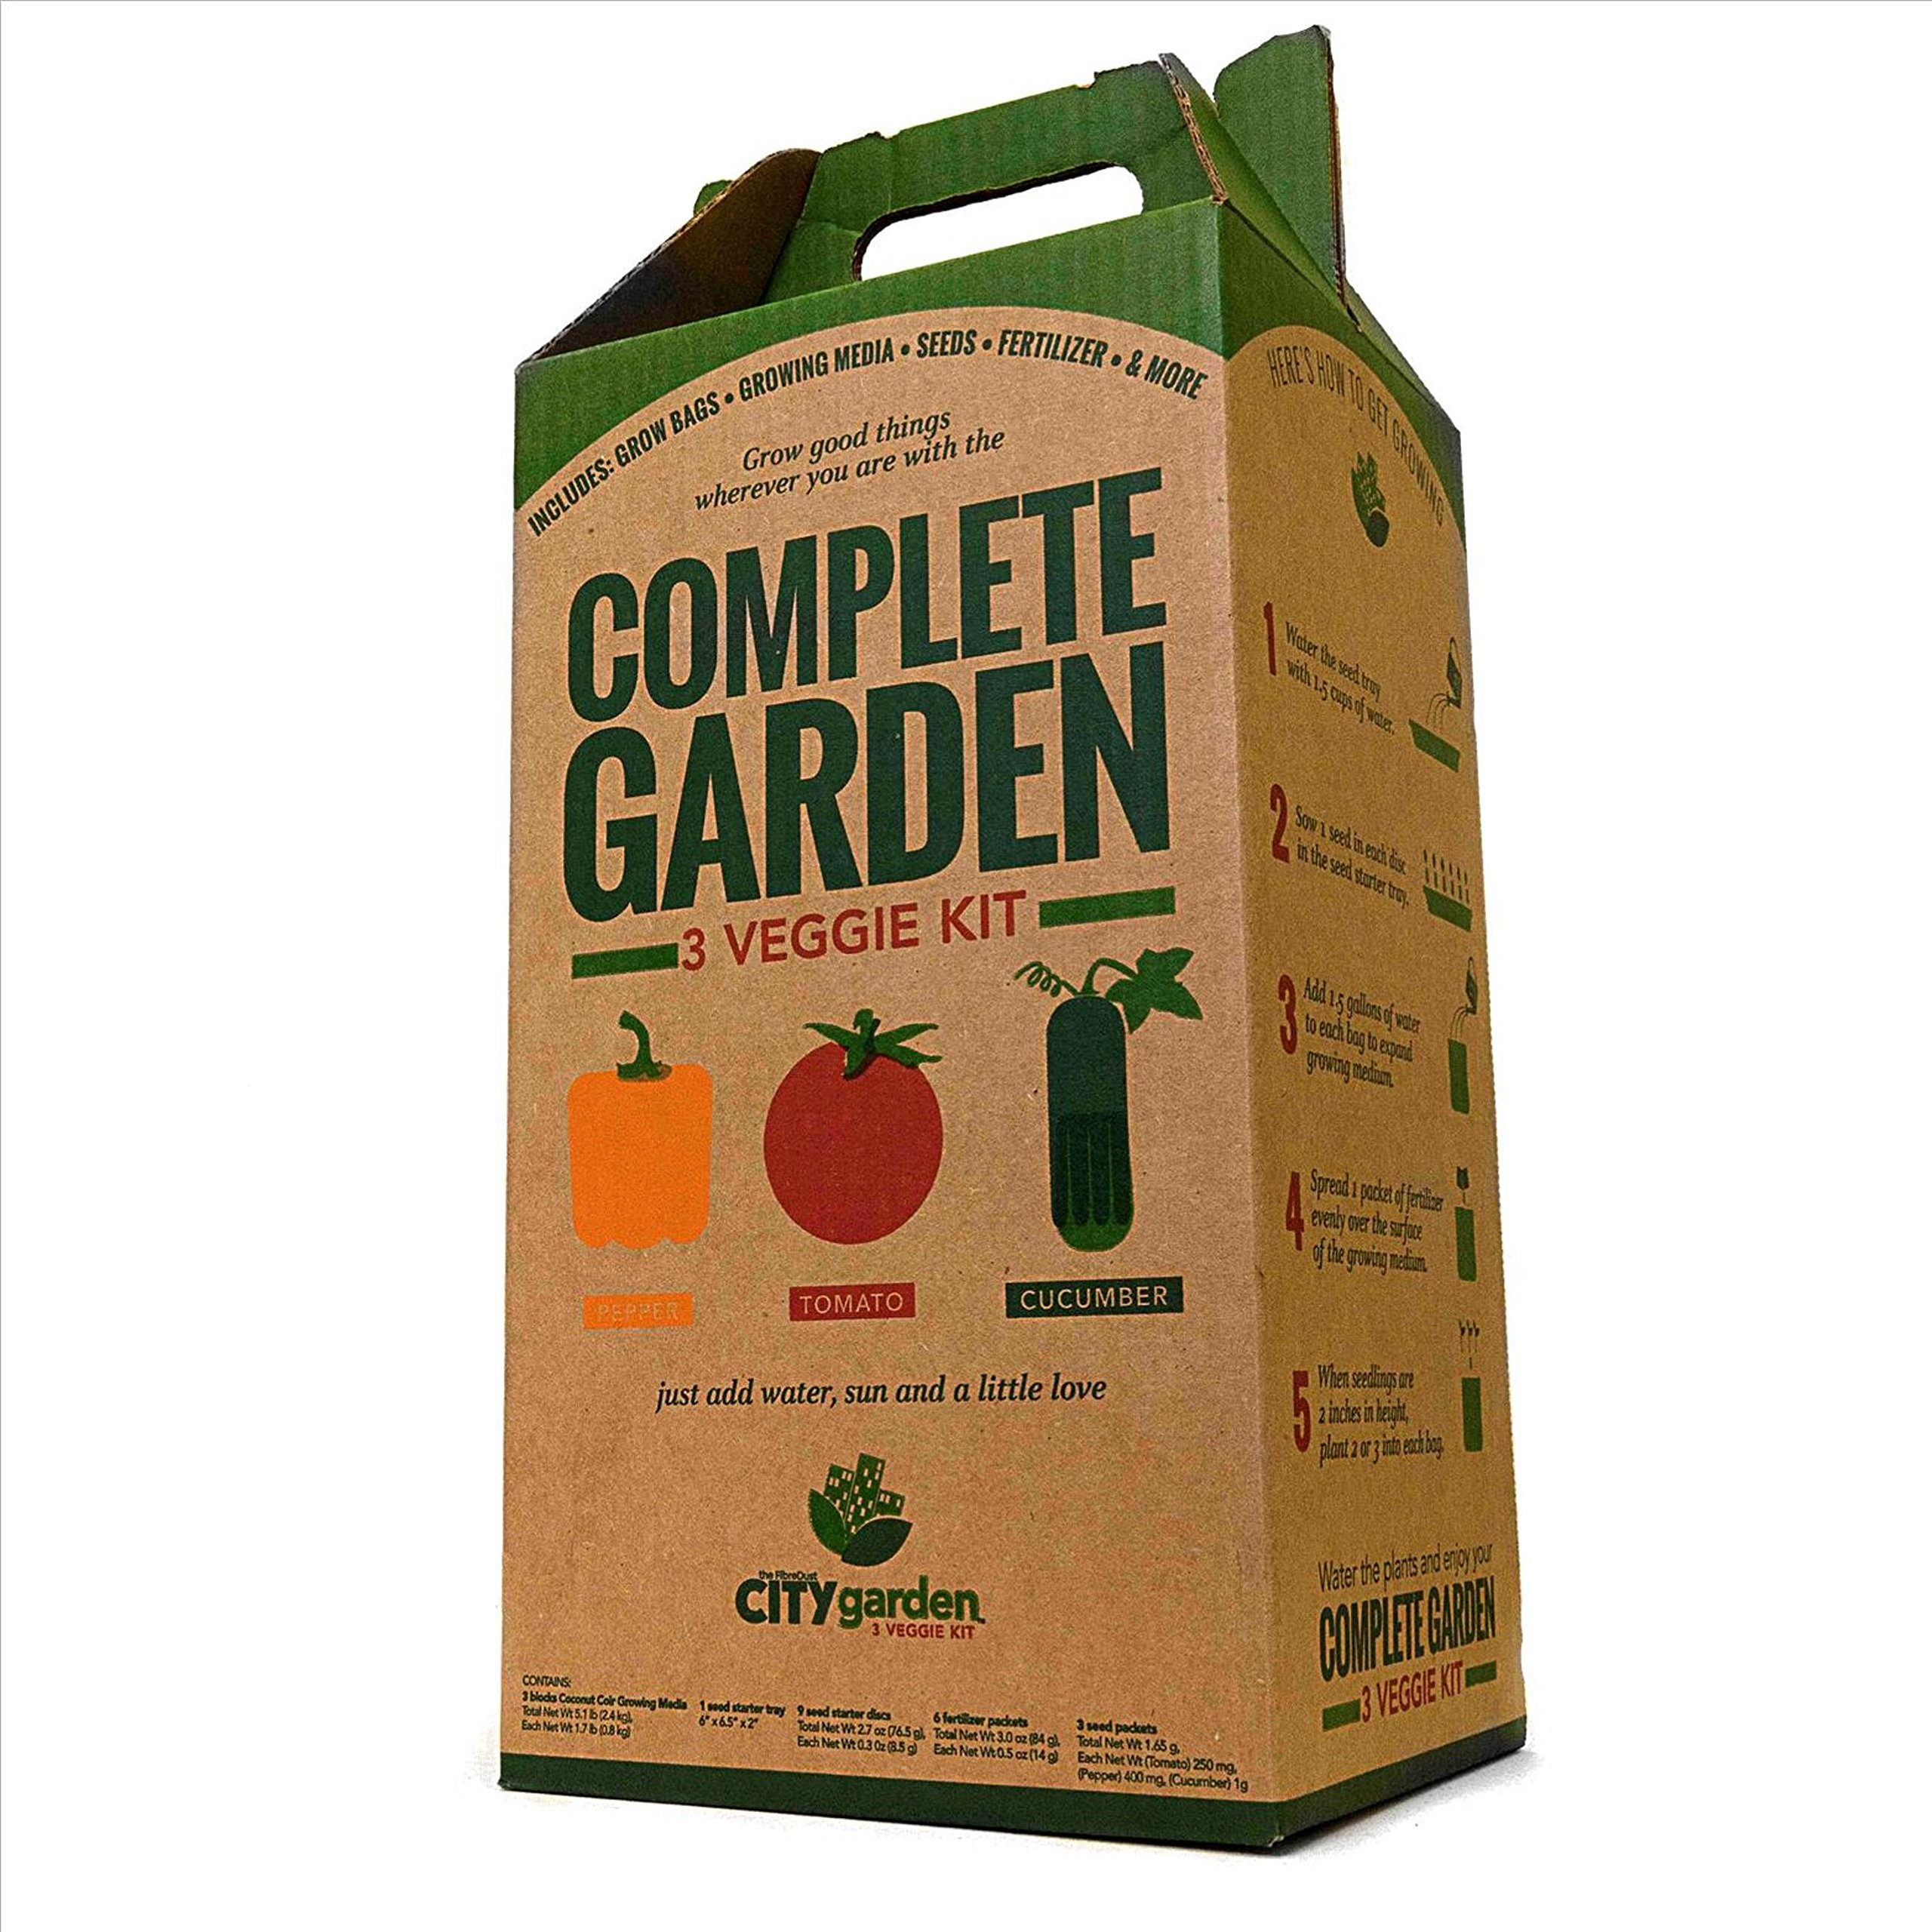 City Garden Complete Garden Kit - Everything You Need to Grow Tomatoes, Peppers, Cucumbers At Home by FibreDust City Garden